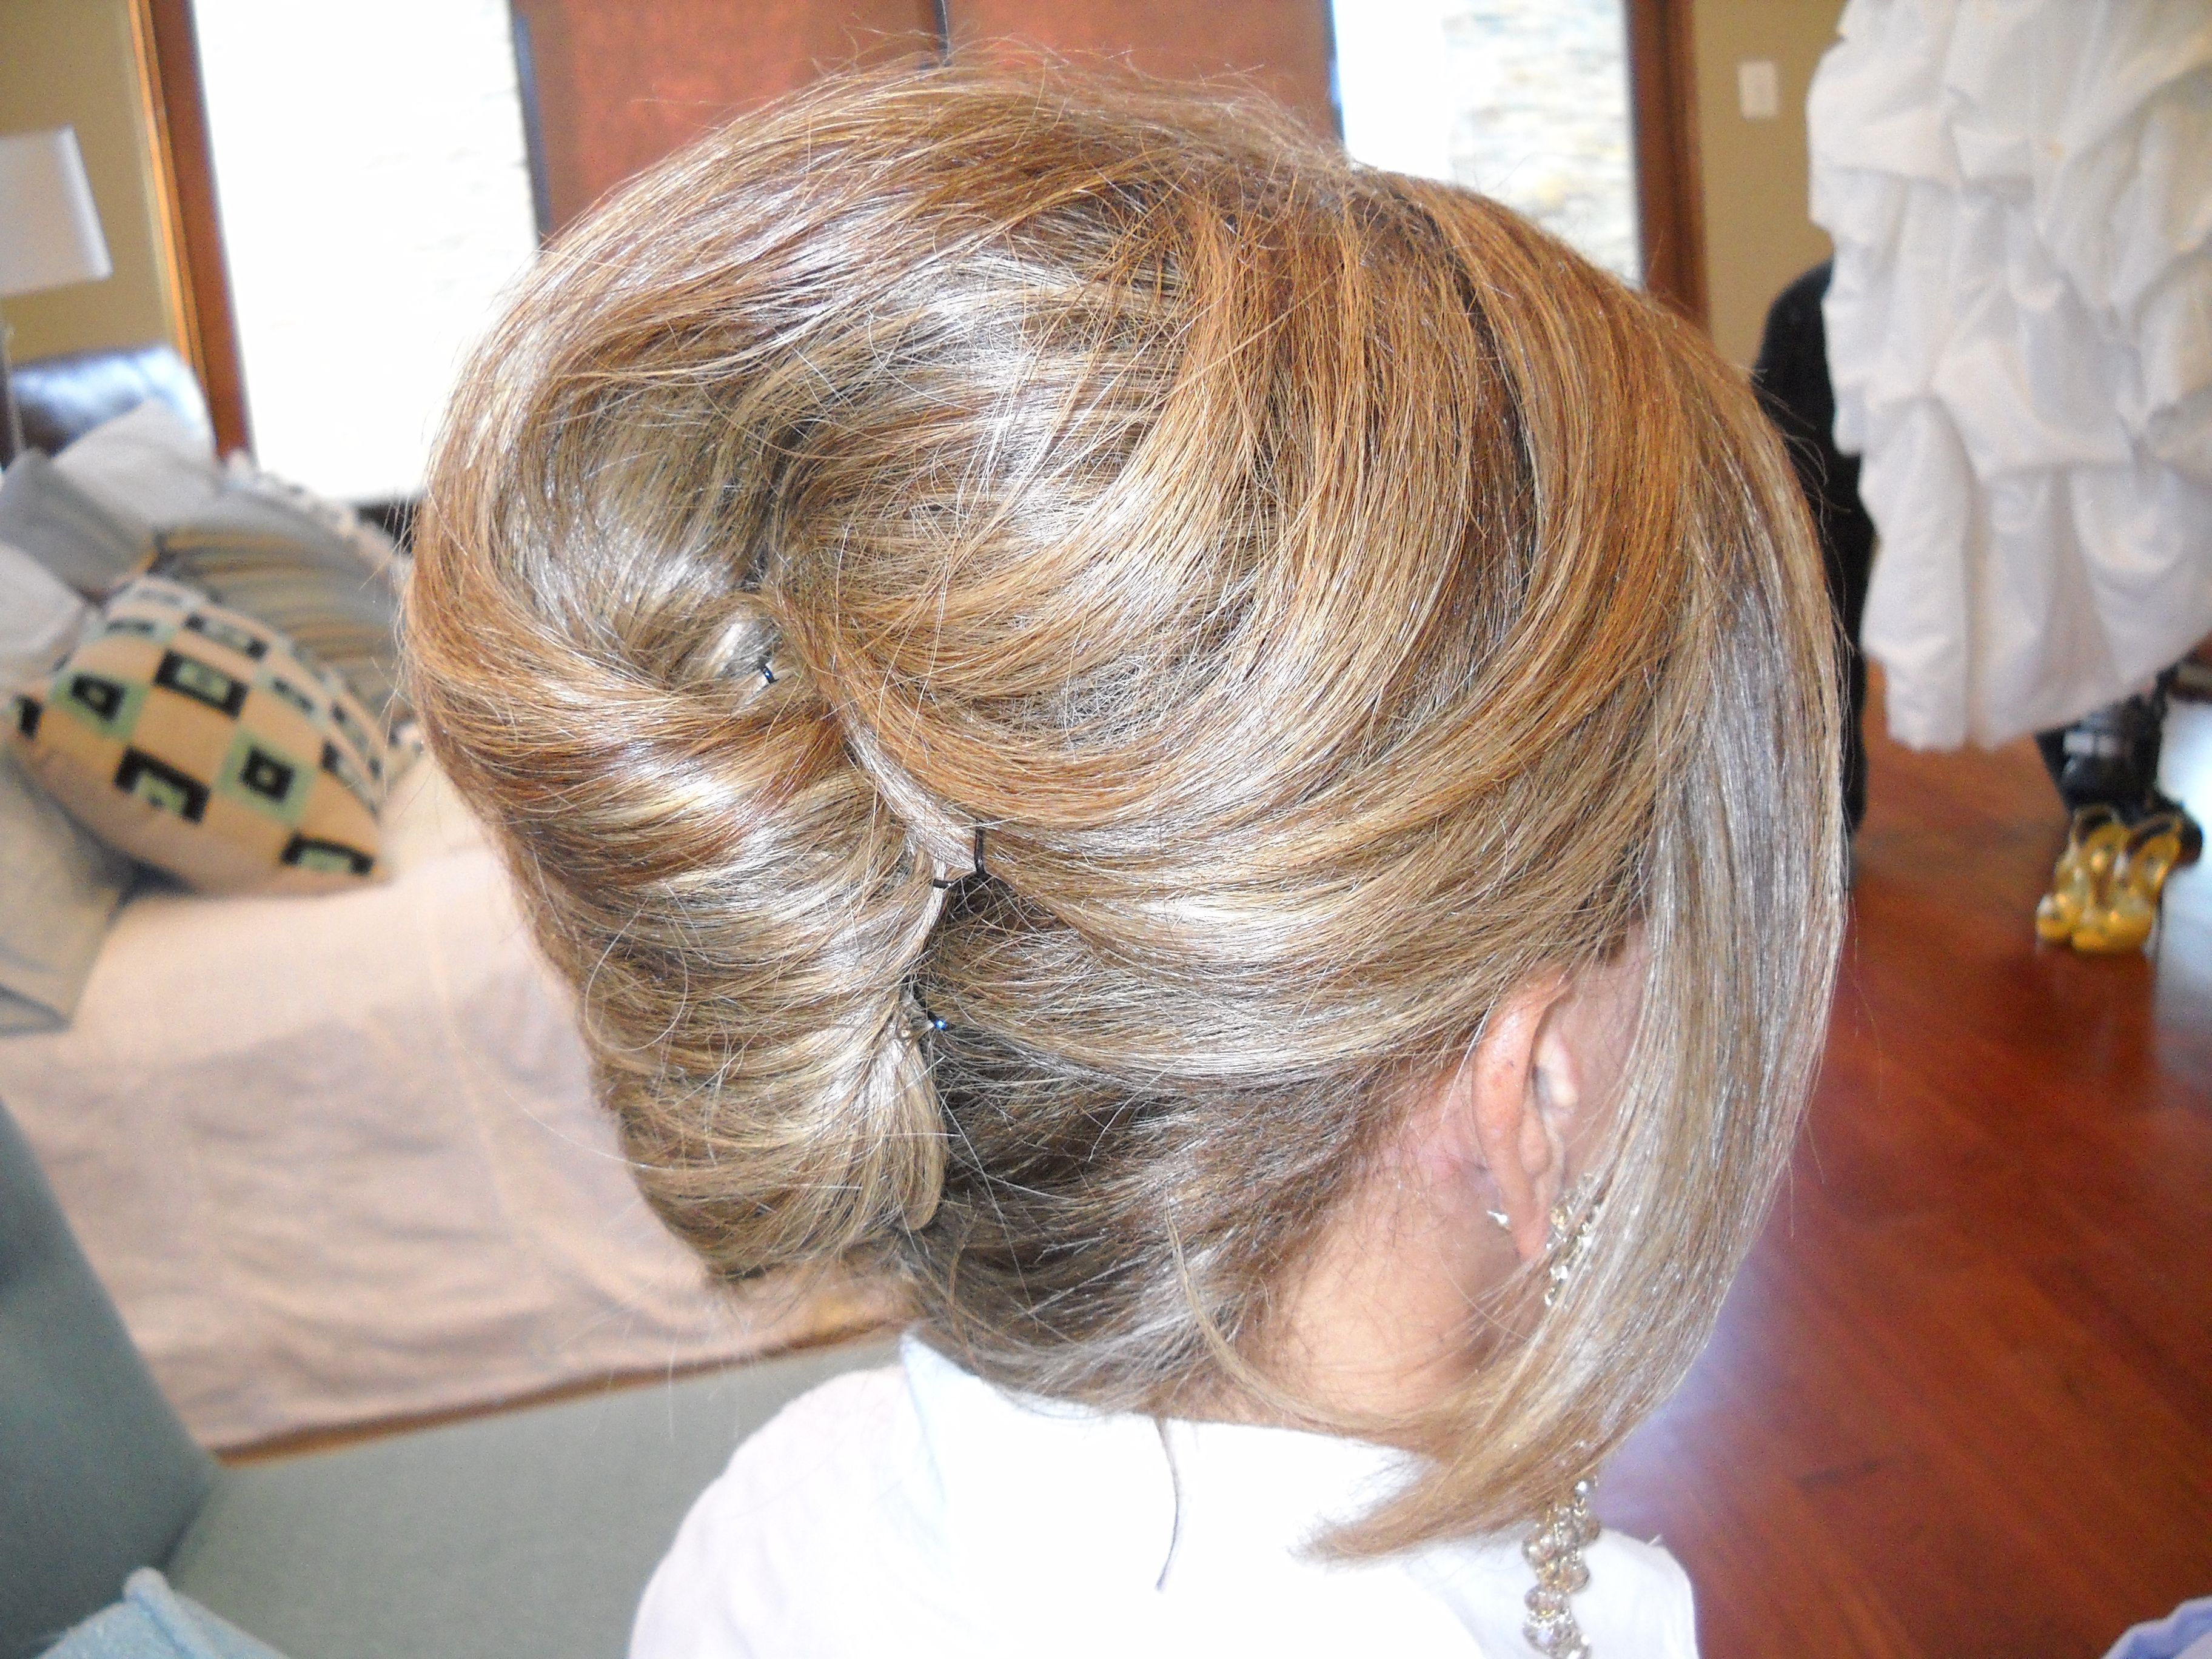 Mother of the Bride's Hair | Wedding Hair | Pinterest ...